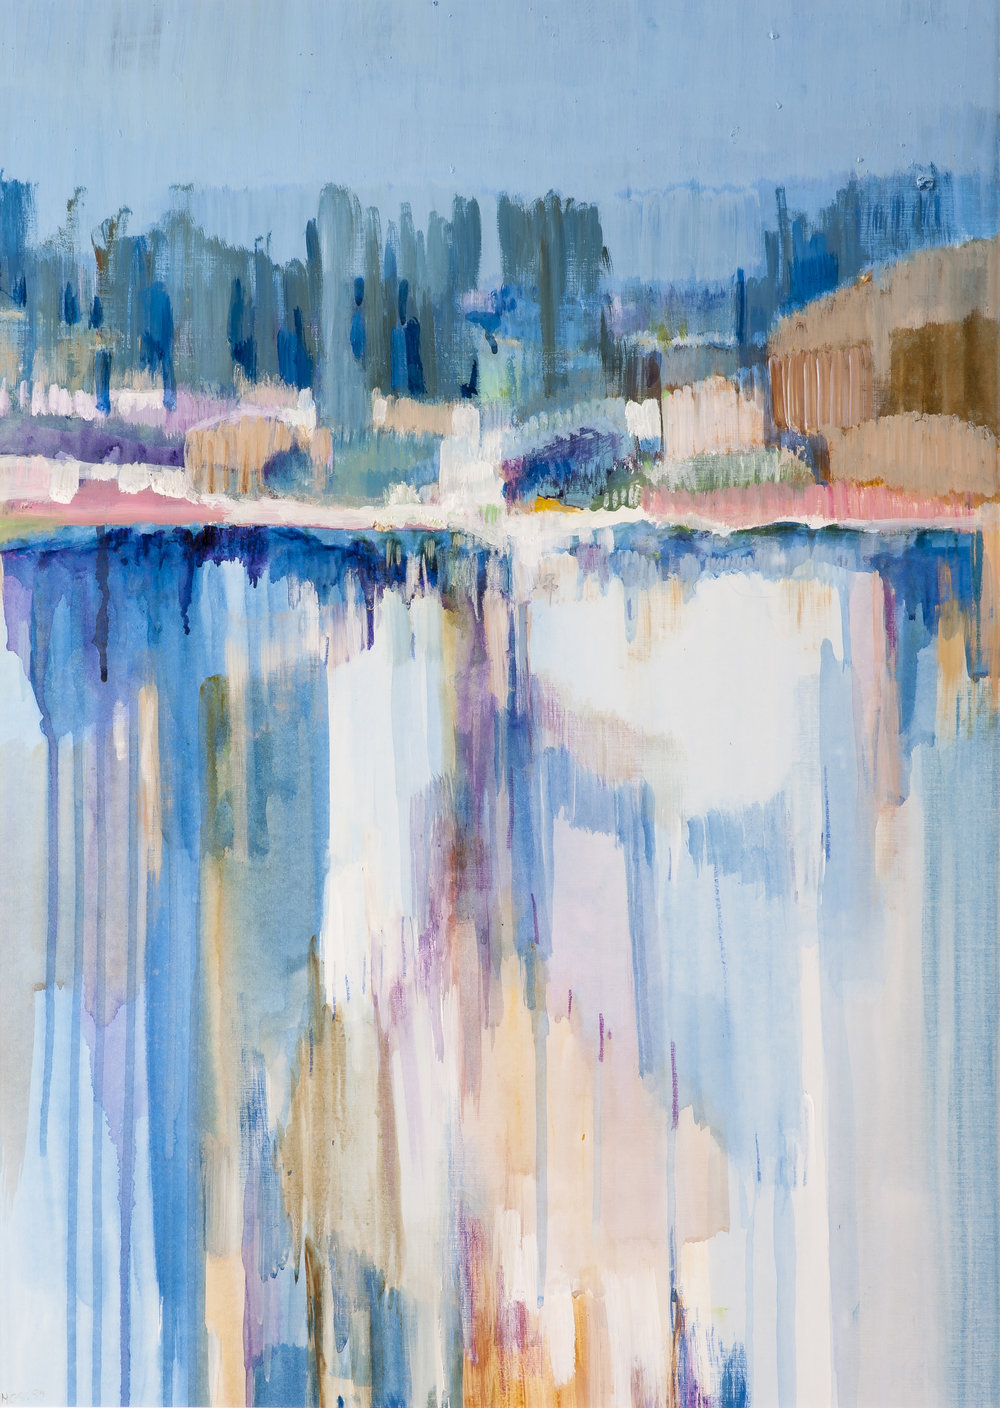 Helen Grey-Smith ,Forestry Dam , 1985, acrylic, 67 x 47 cm. Collection of Bankwest / Commonwealth Bank of Australia, Perth. Photograph by Simon Cowling. Courtesy Grey-Smith Estate.